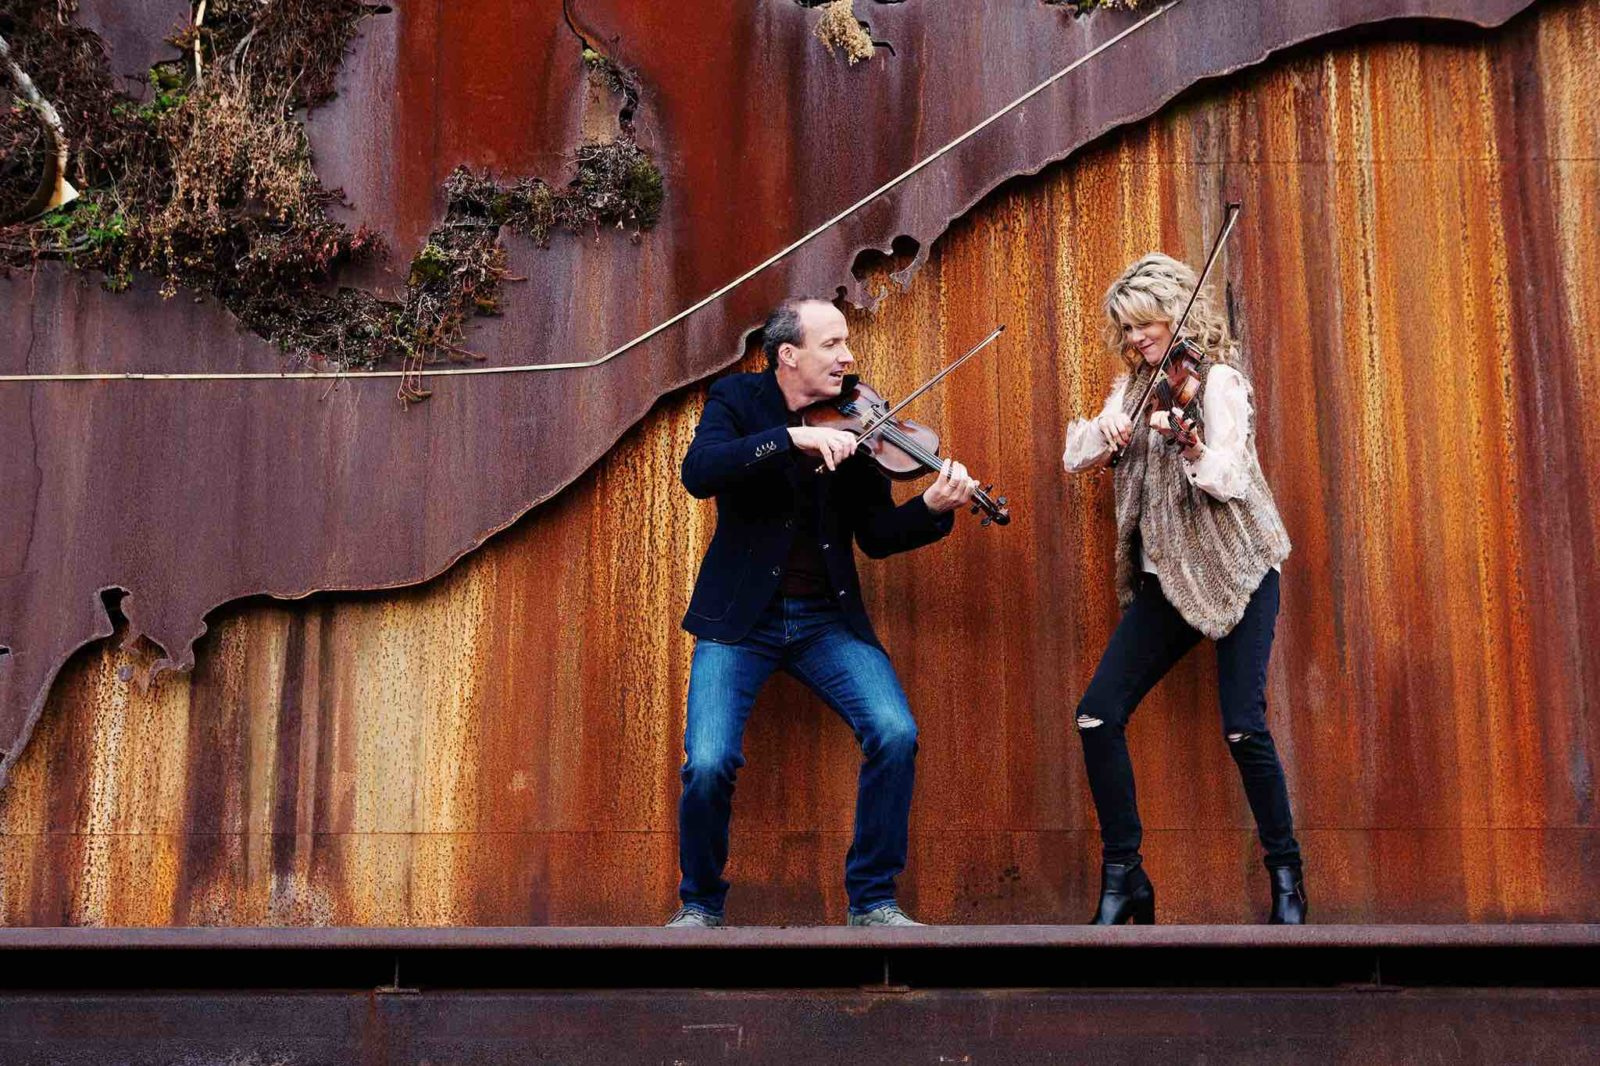 Natalie MacMaster and Donnell Leahy playing fiddles on stage